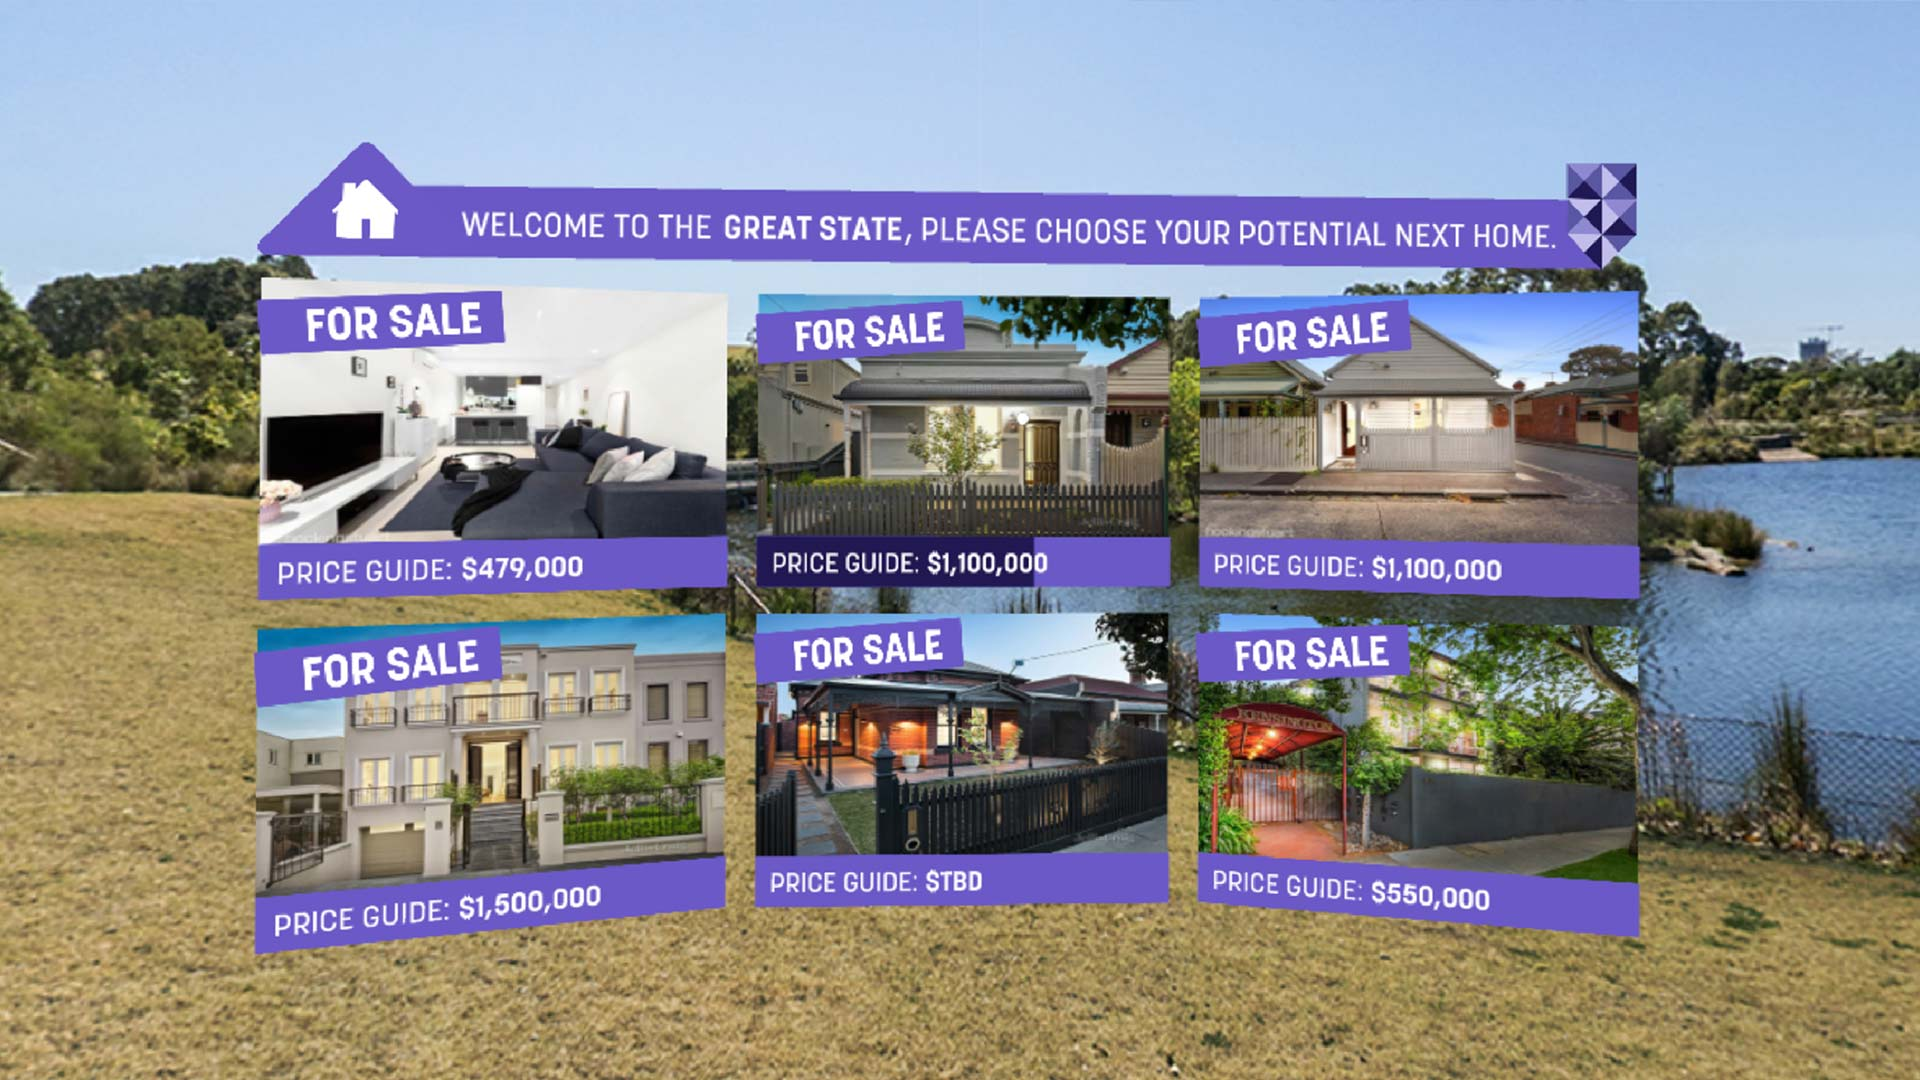 Real Estate VR Image of The Great State Rate VR by Start Beyond 03